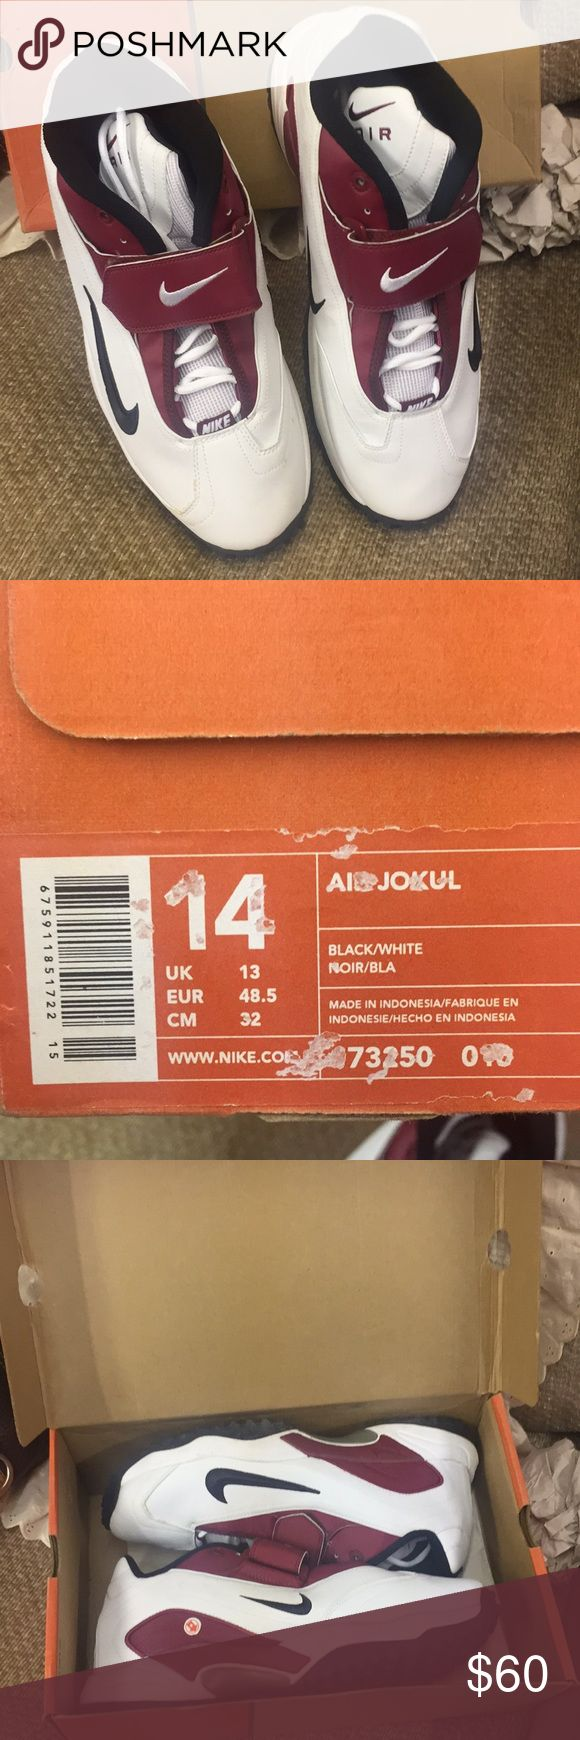 NIKE AIR JOKUL Turf shoes size 14 Brand new in box. Baseball softball turf shoes. Size 14 Nike Shoes